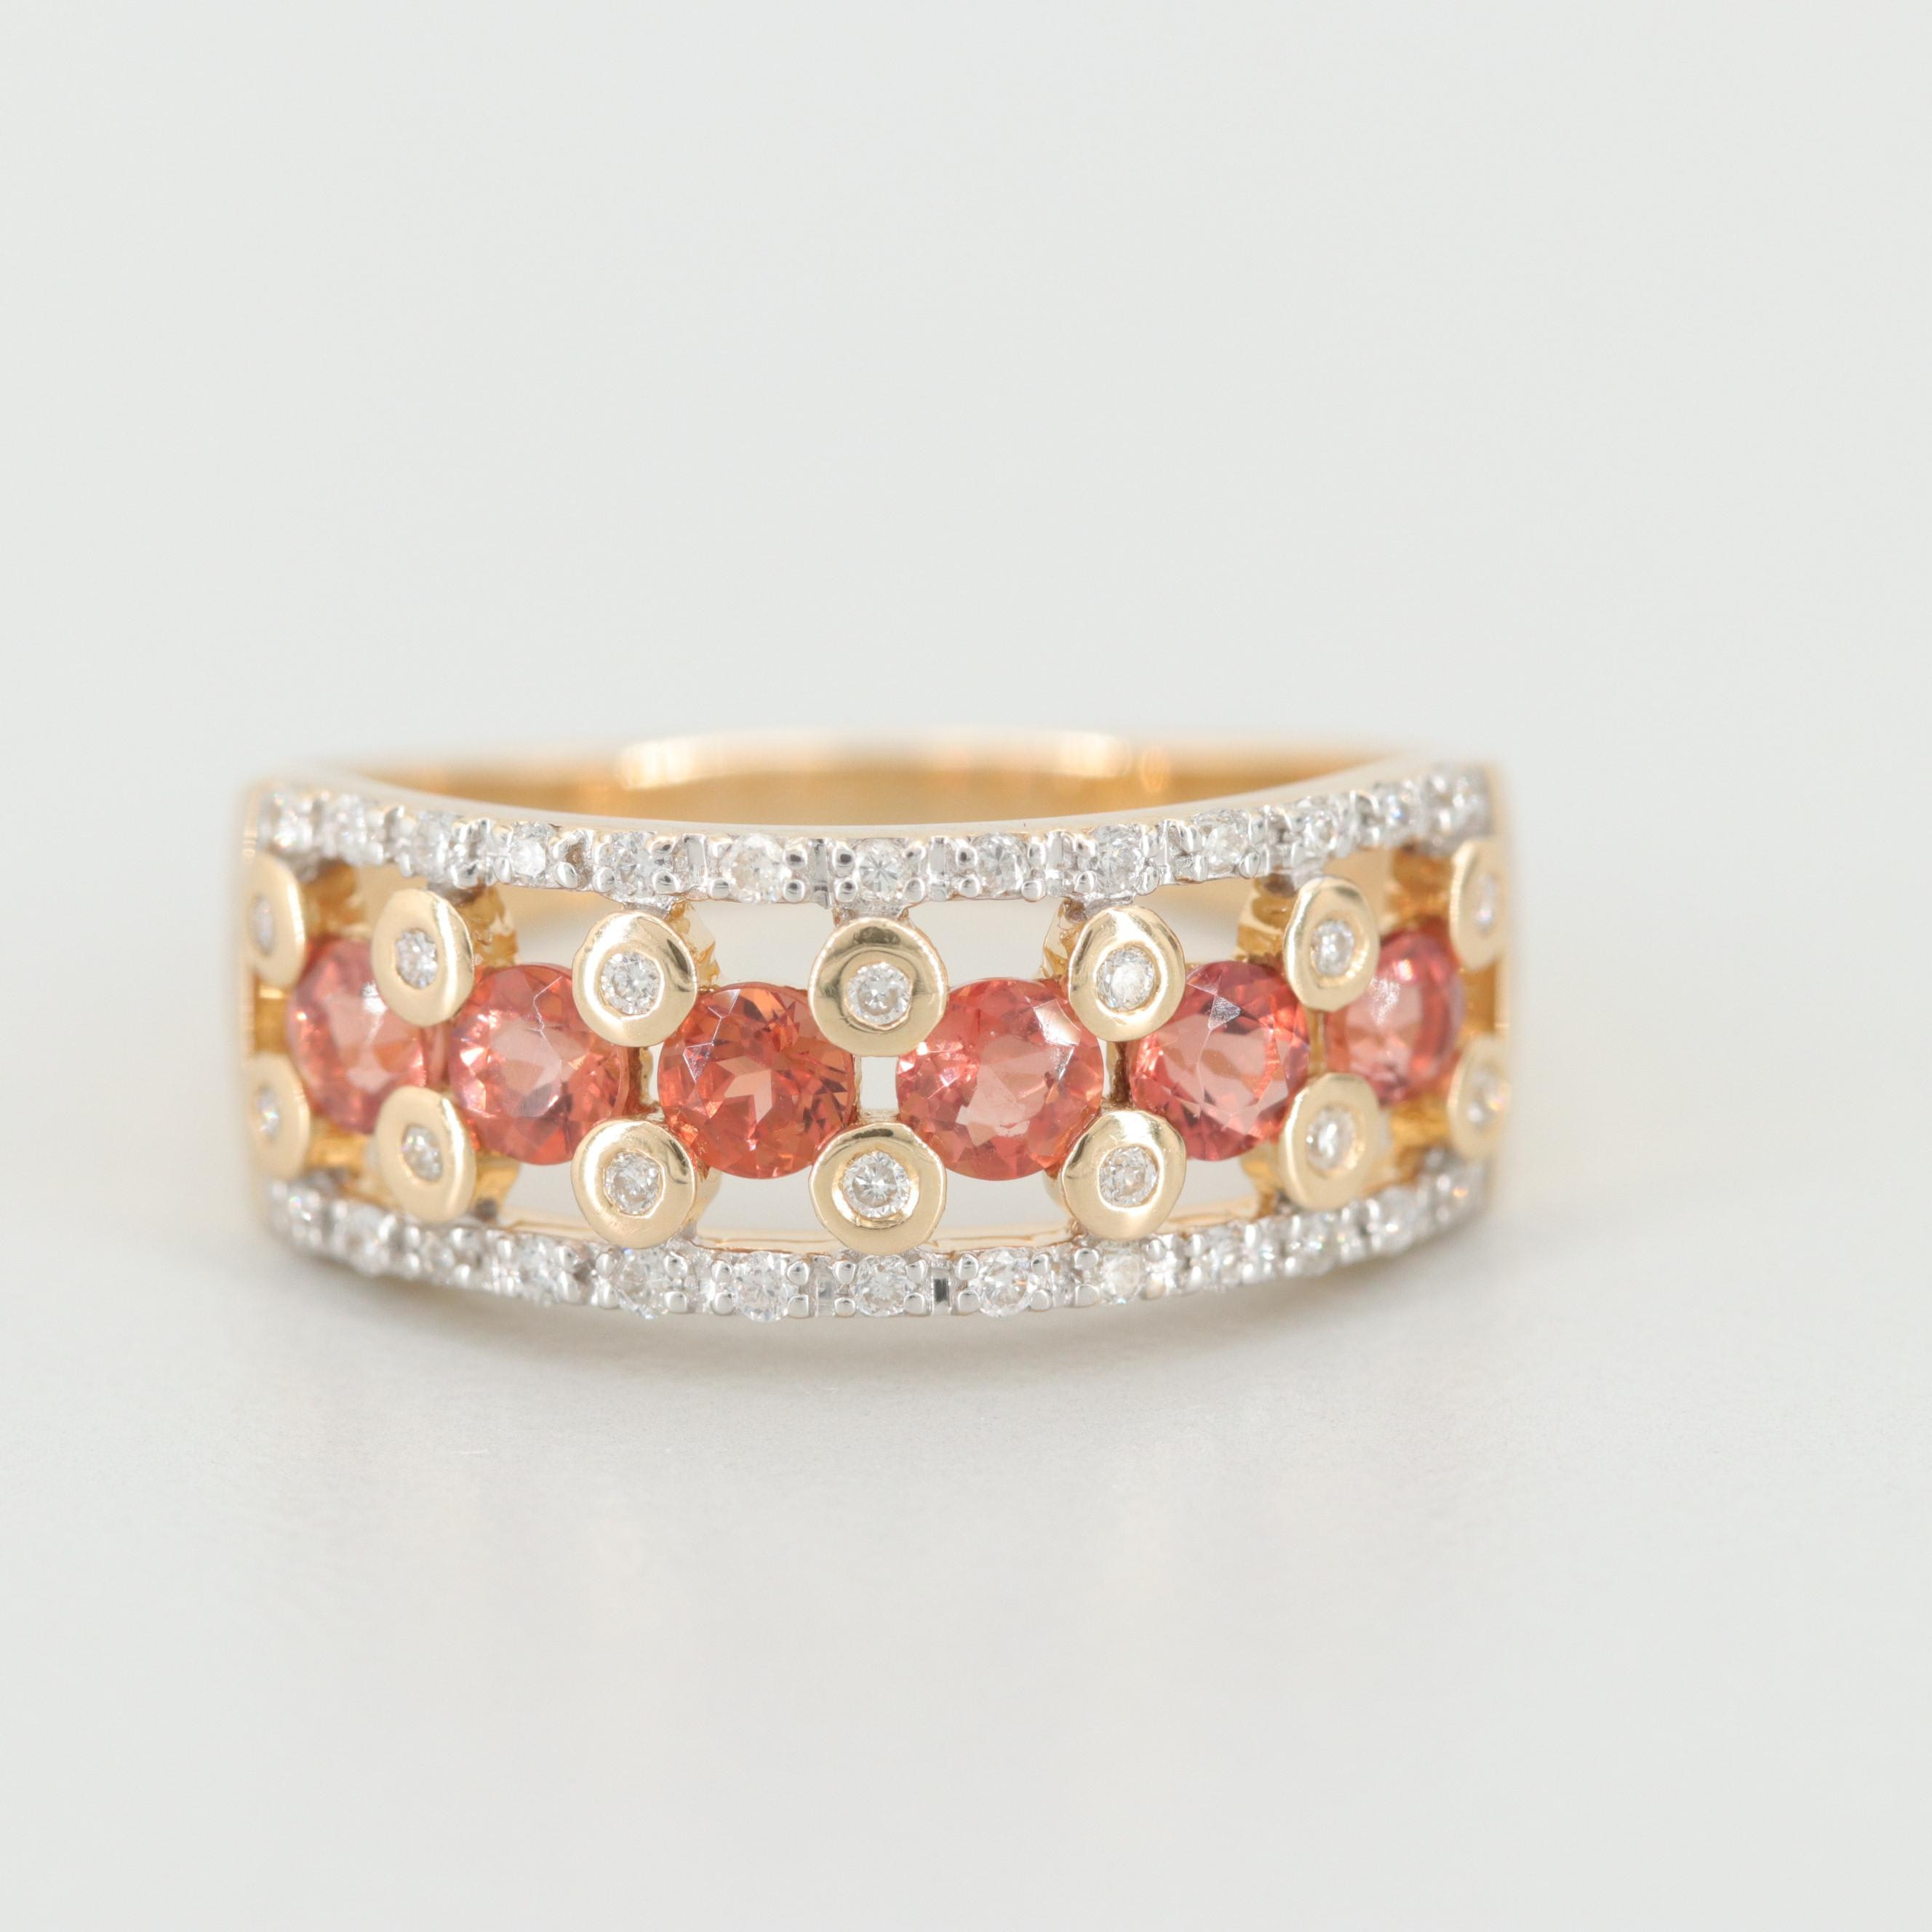 14K Yellow Gold Andesine and Diamond Ring